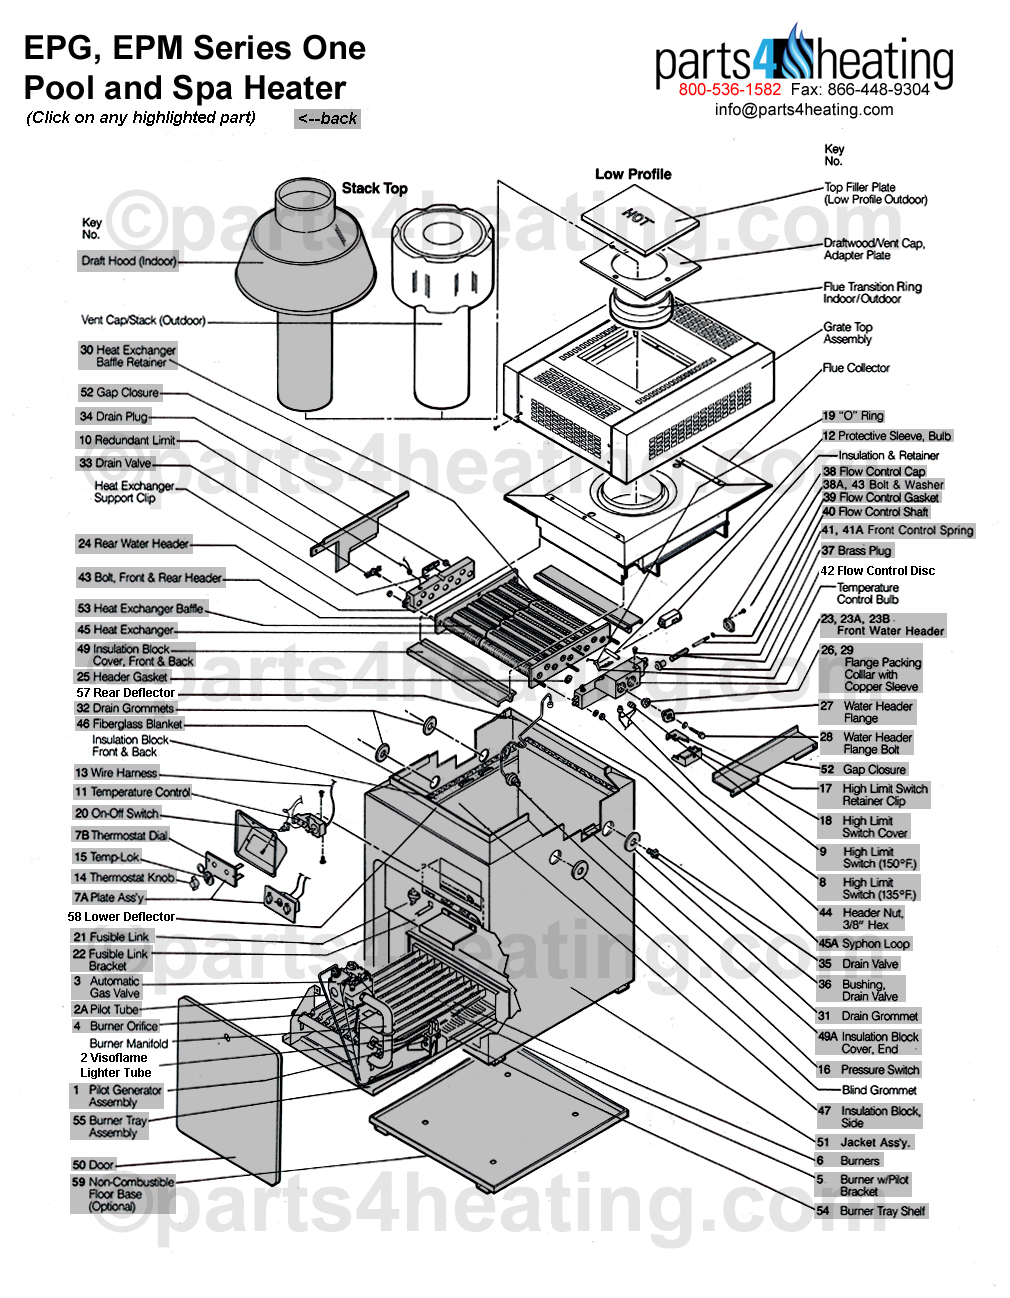 Wiring Diagram For Jandy Pool Heater Trusted Diagrams Actuator Lite 2 Online Schematic U2022 Pump